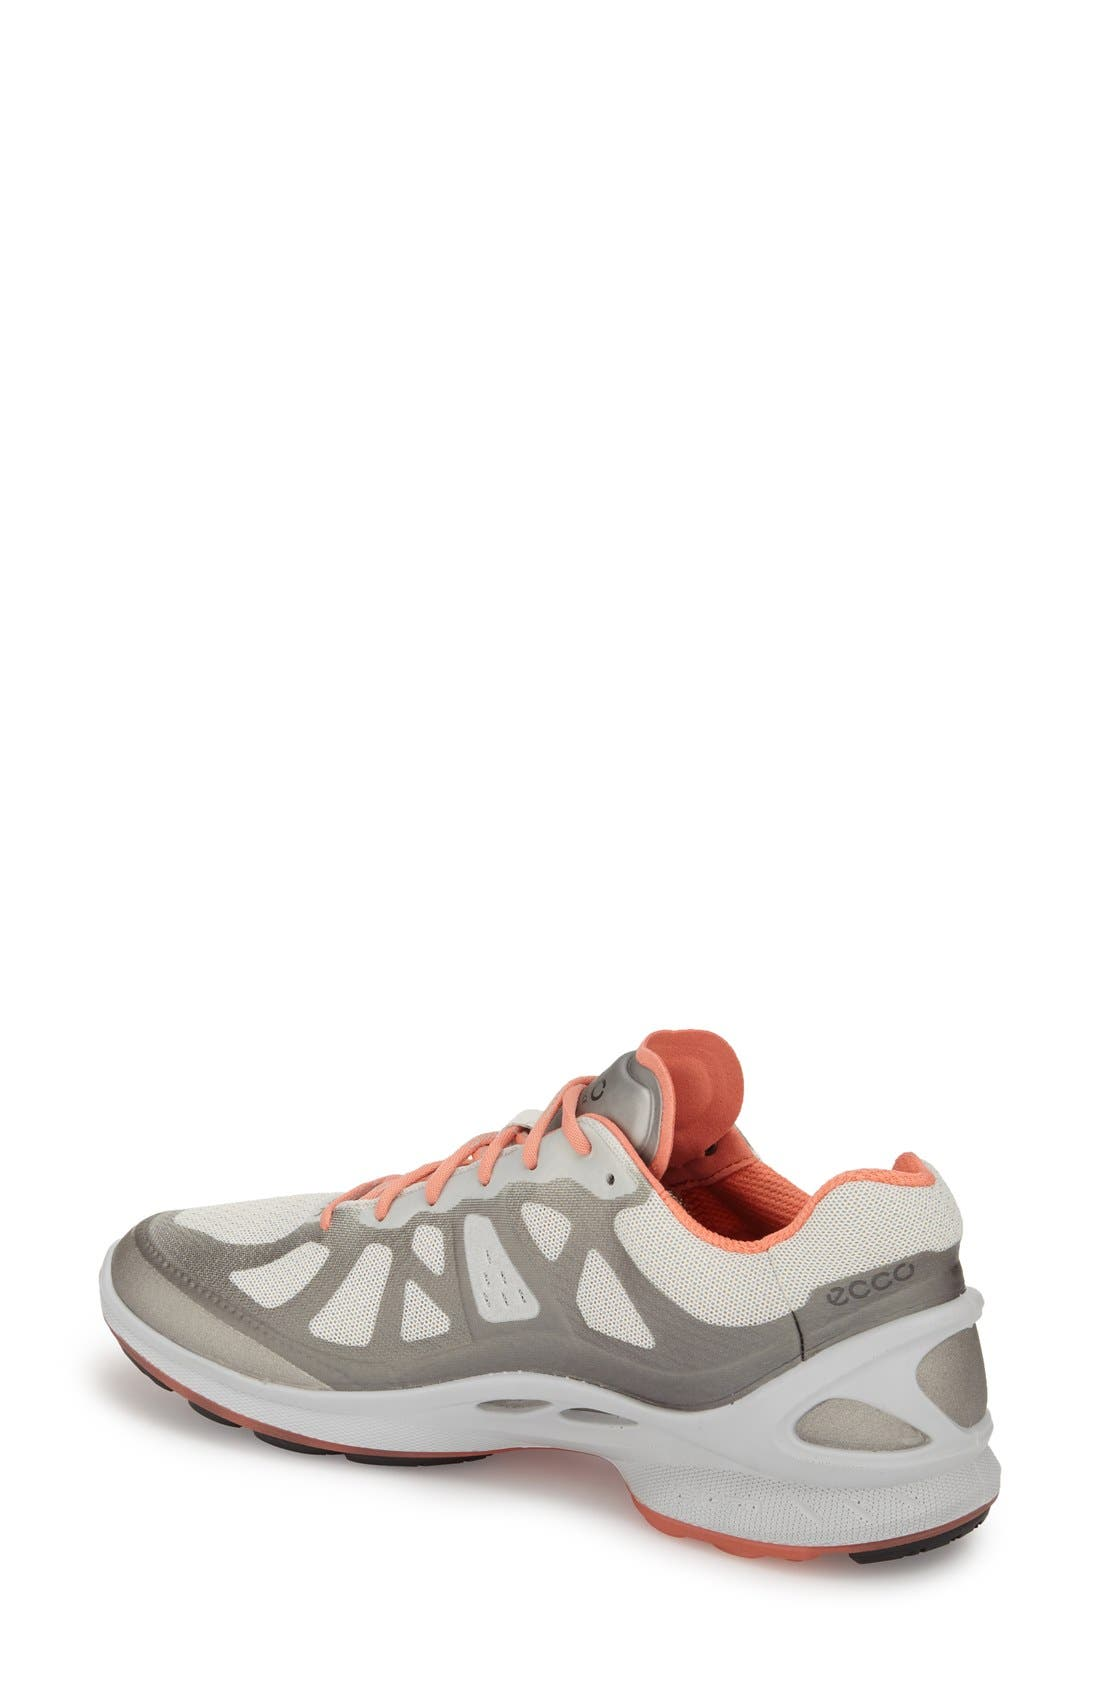 'BIOM Fjuel Racer' Sneaker,                             Alternate thumbnail 5, color,                             SILVER METALLIC CORAL